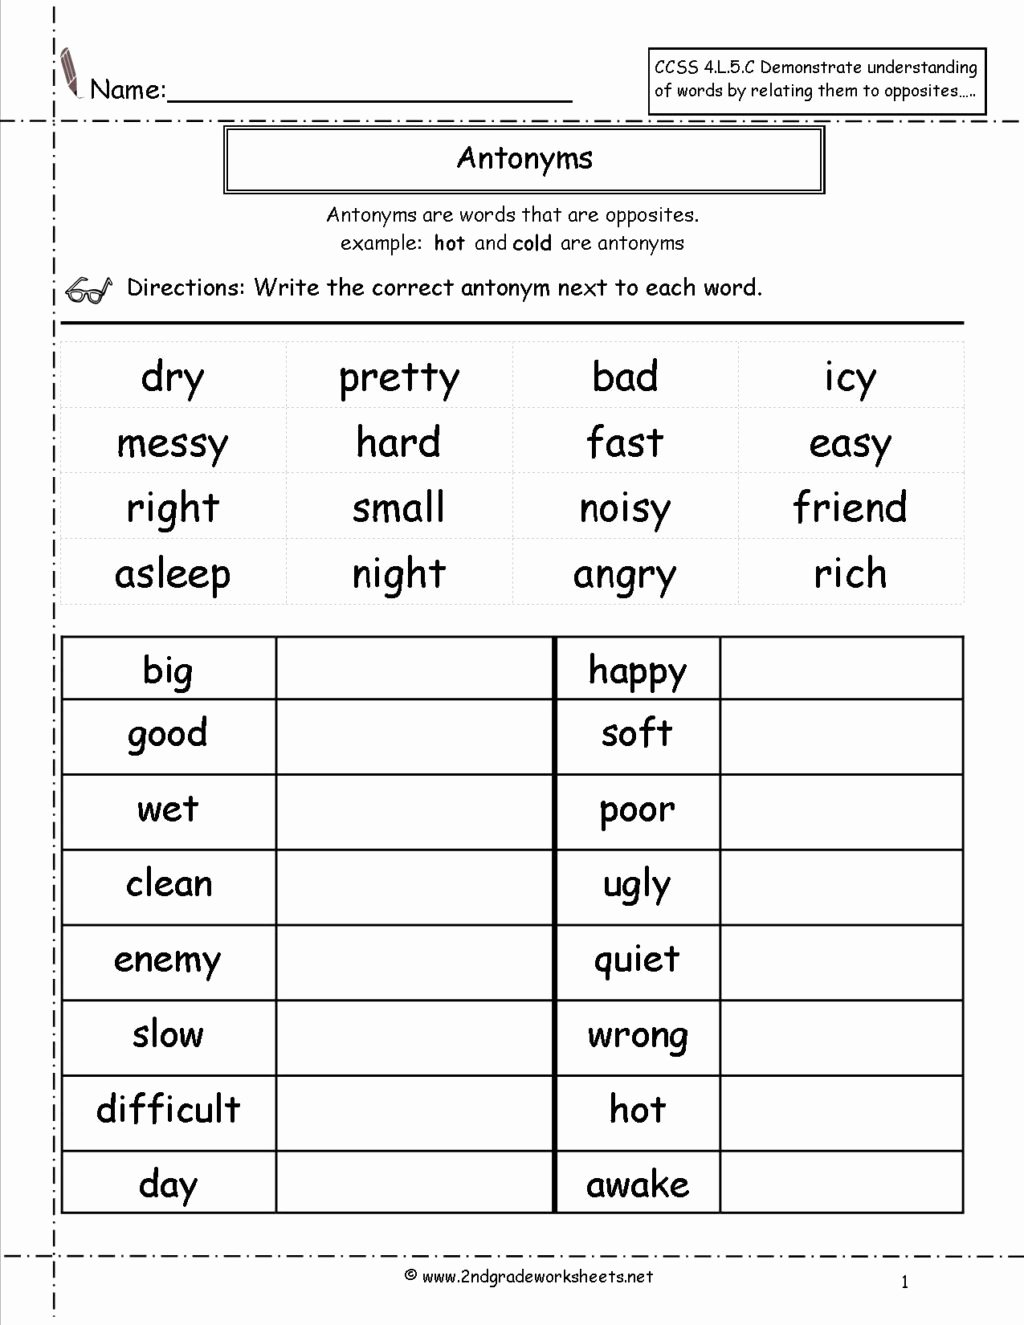 Grammar Worksheets for 2nd Grade Ideas Worksheet 2nd Grade Grammar Worksheets Free